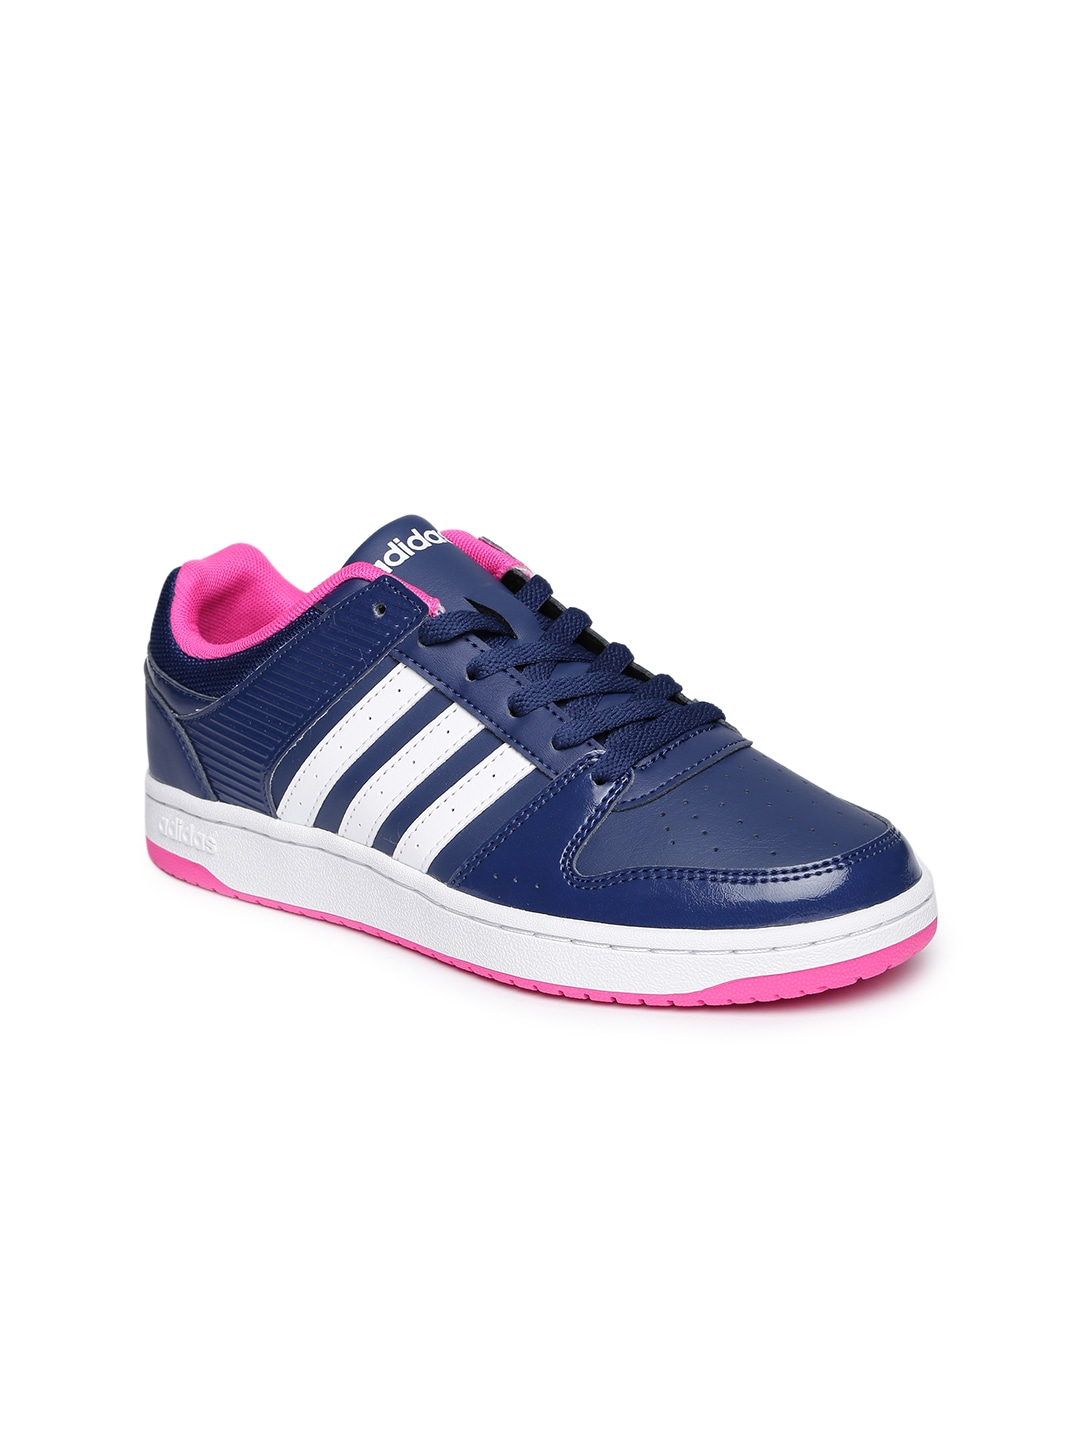 525f599de088 Adidas Neo Shoes - Buy Adidas Neo Shoes online in India